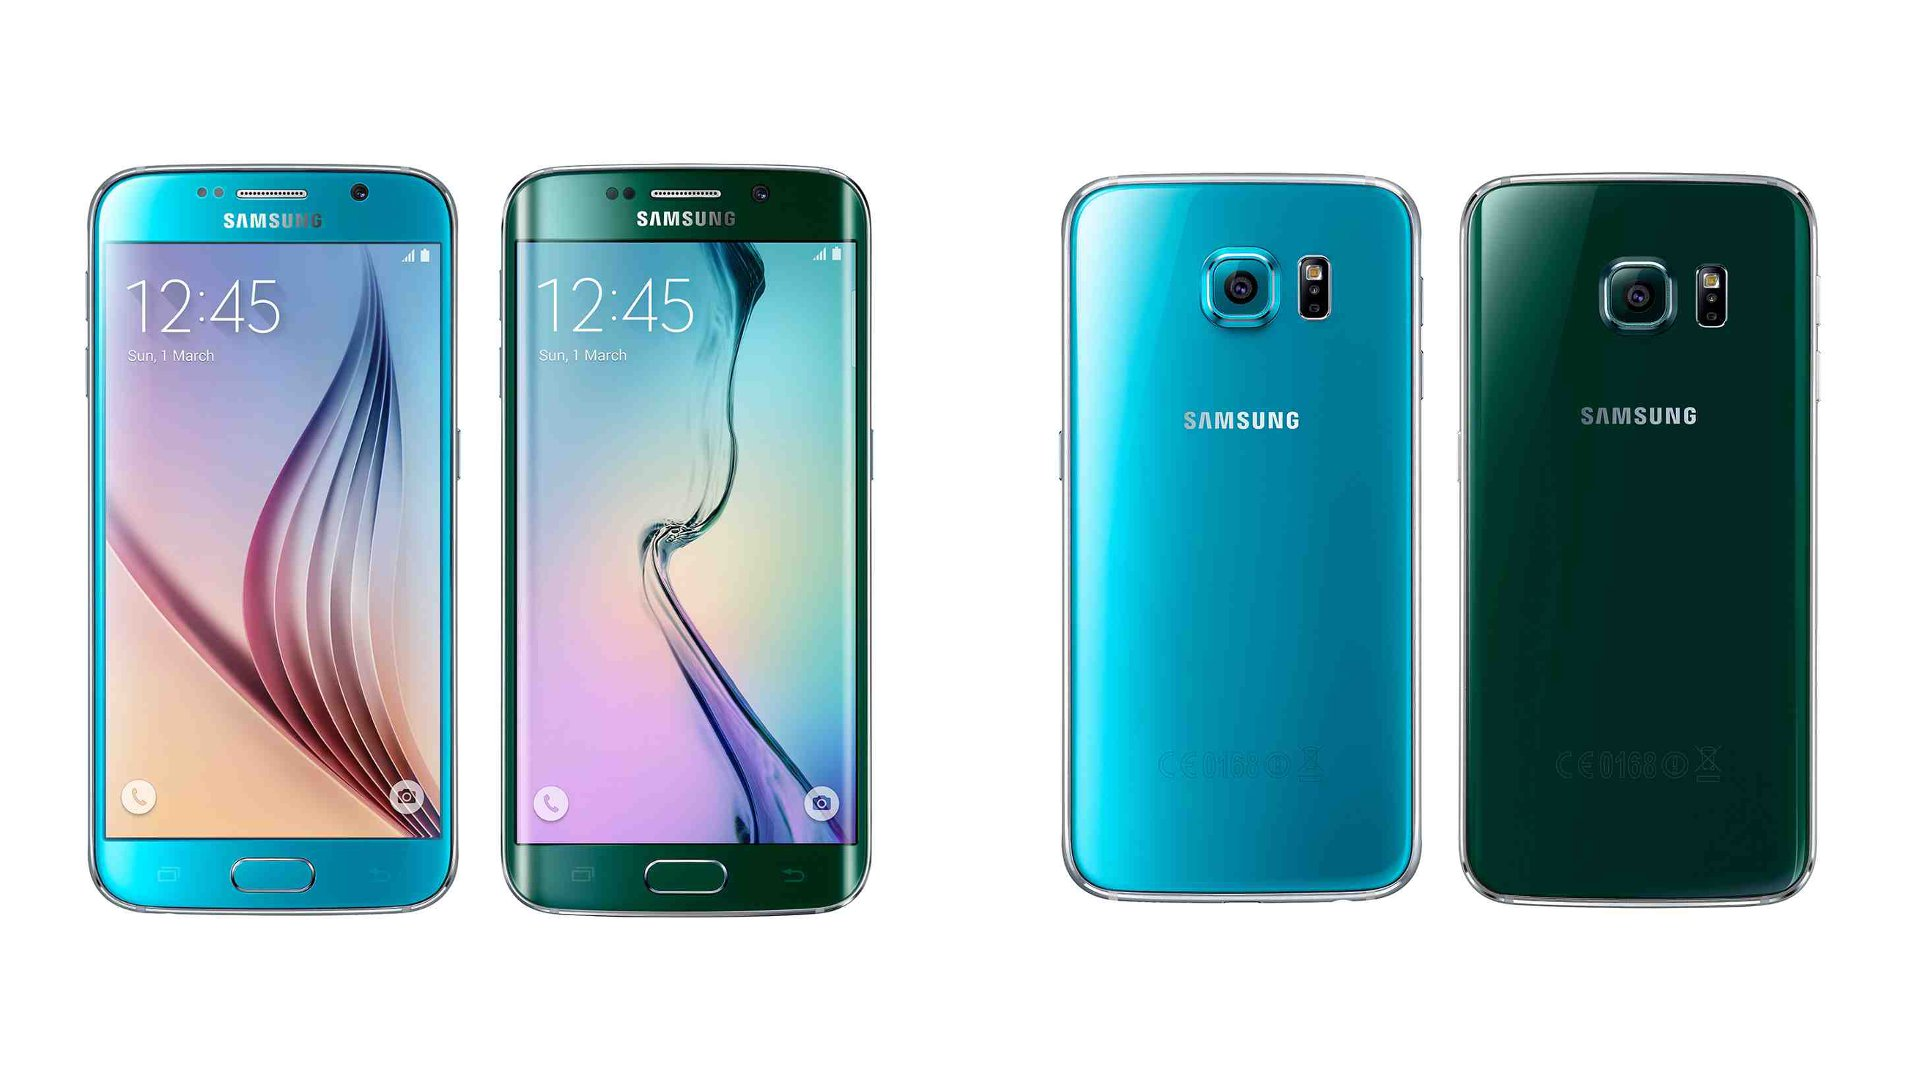 Blue Topaz Galaxy S6 and Green Emerald Galaxy S6 Edge